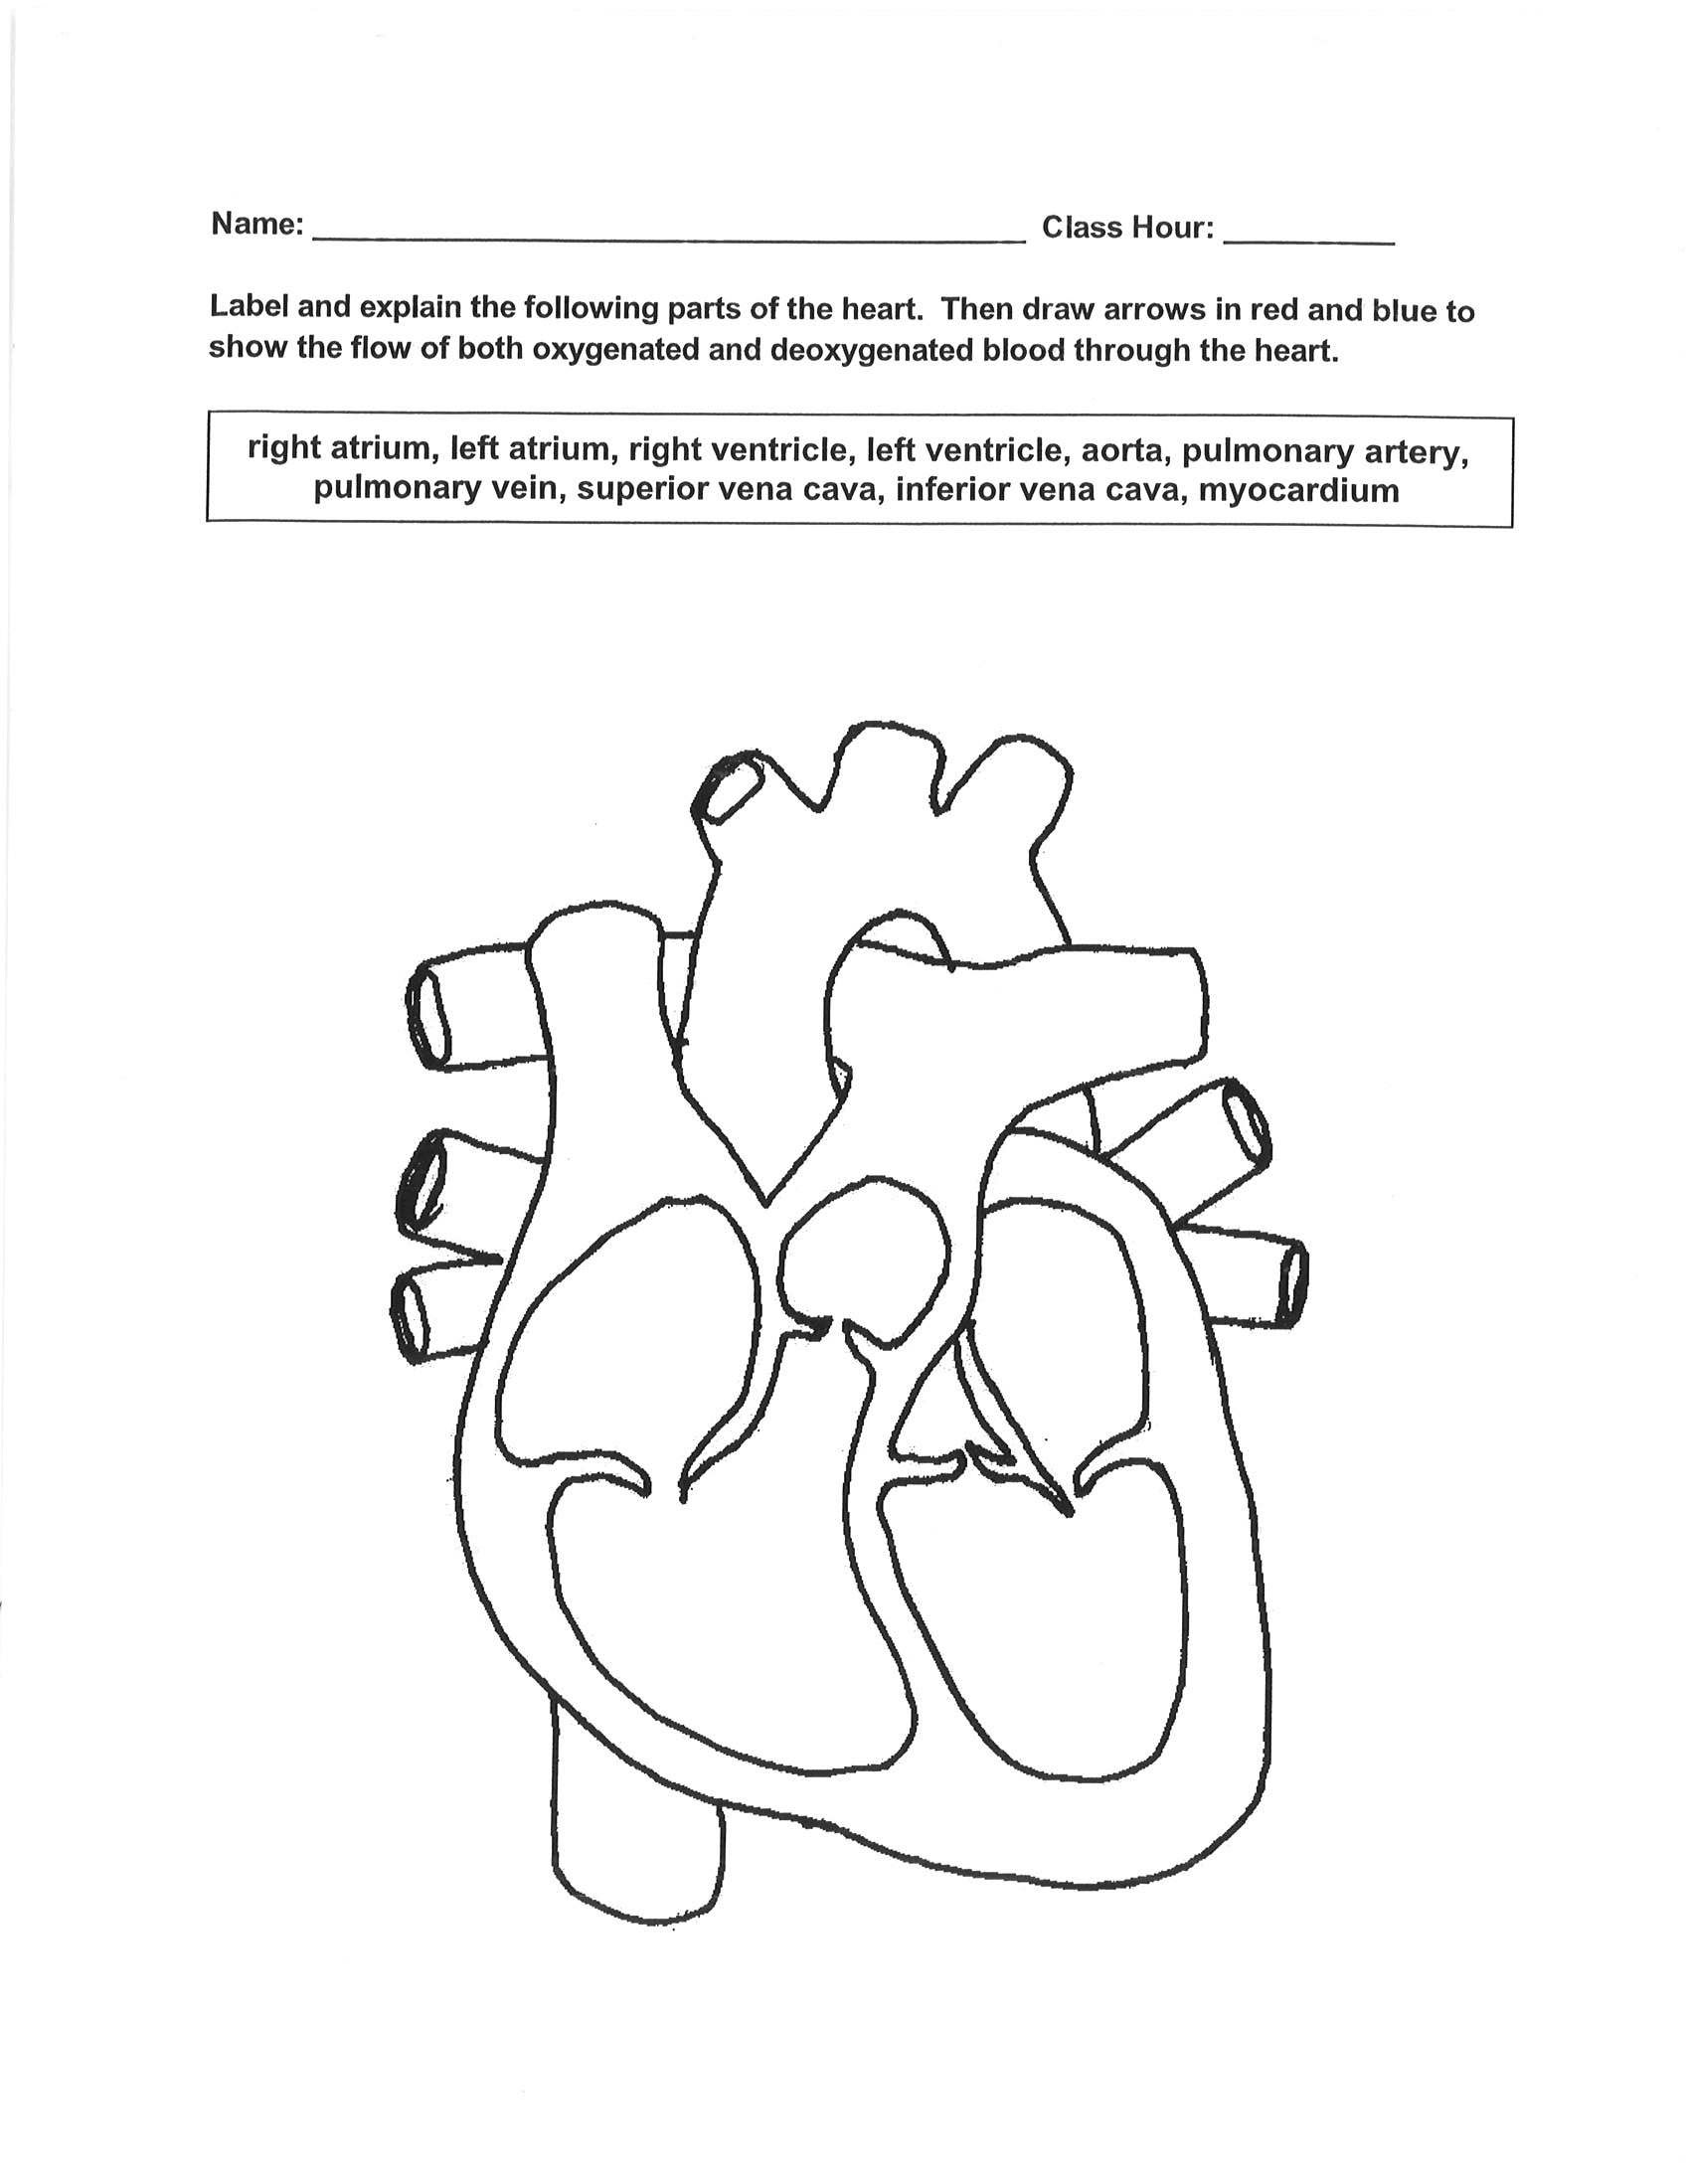 Worksheet Circulatory System Worksheet circulatory system worksheets for high school intrepidpath medical detectives